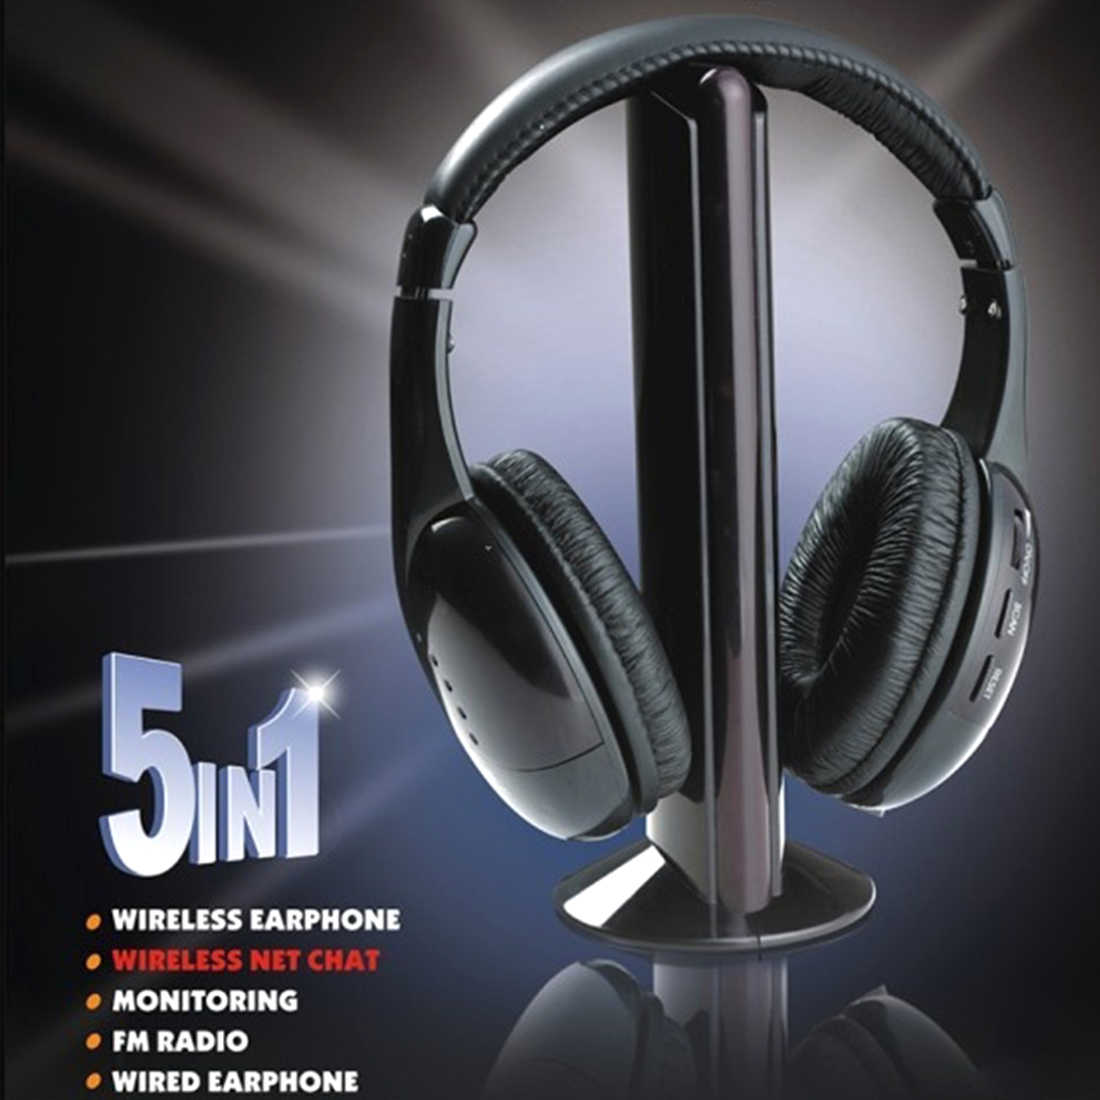 Marsnaska Kualitas Tinggi 5 In 1 Nirkabel Headphone Menonton TV Earphone Cordless Headset untuk MP3 PC Stereo TV FM Ipod